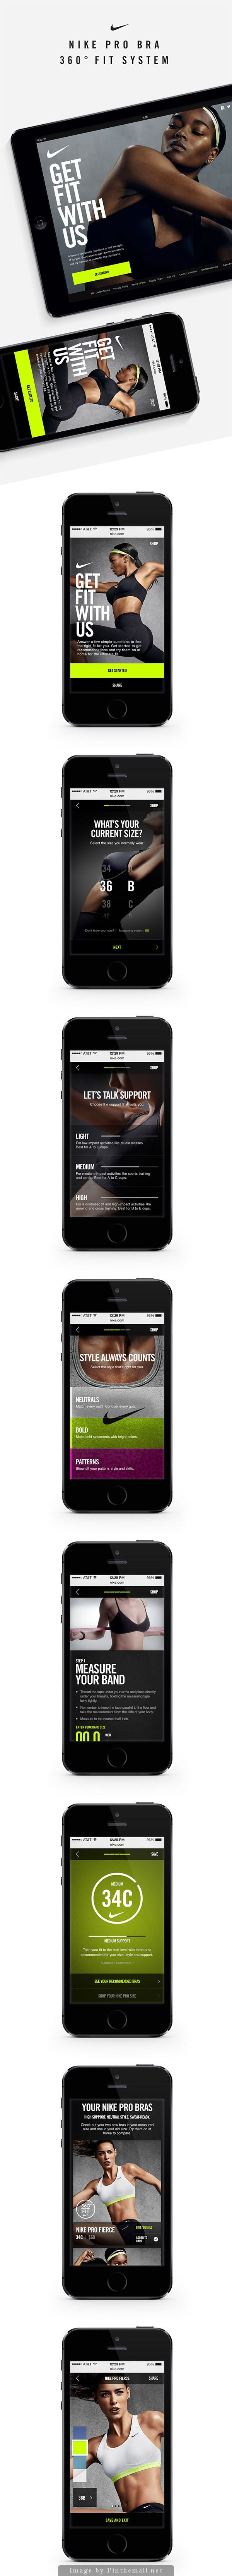 #nike #app #ui #ux #digital #mobile